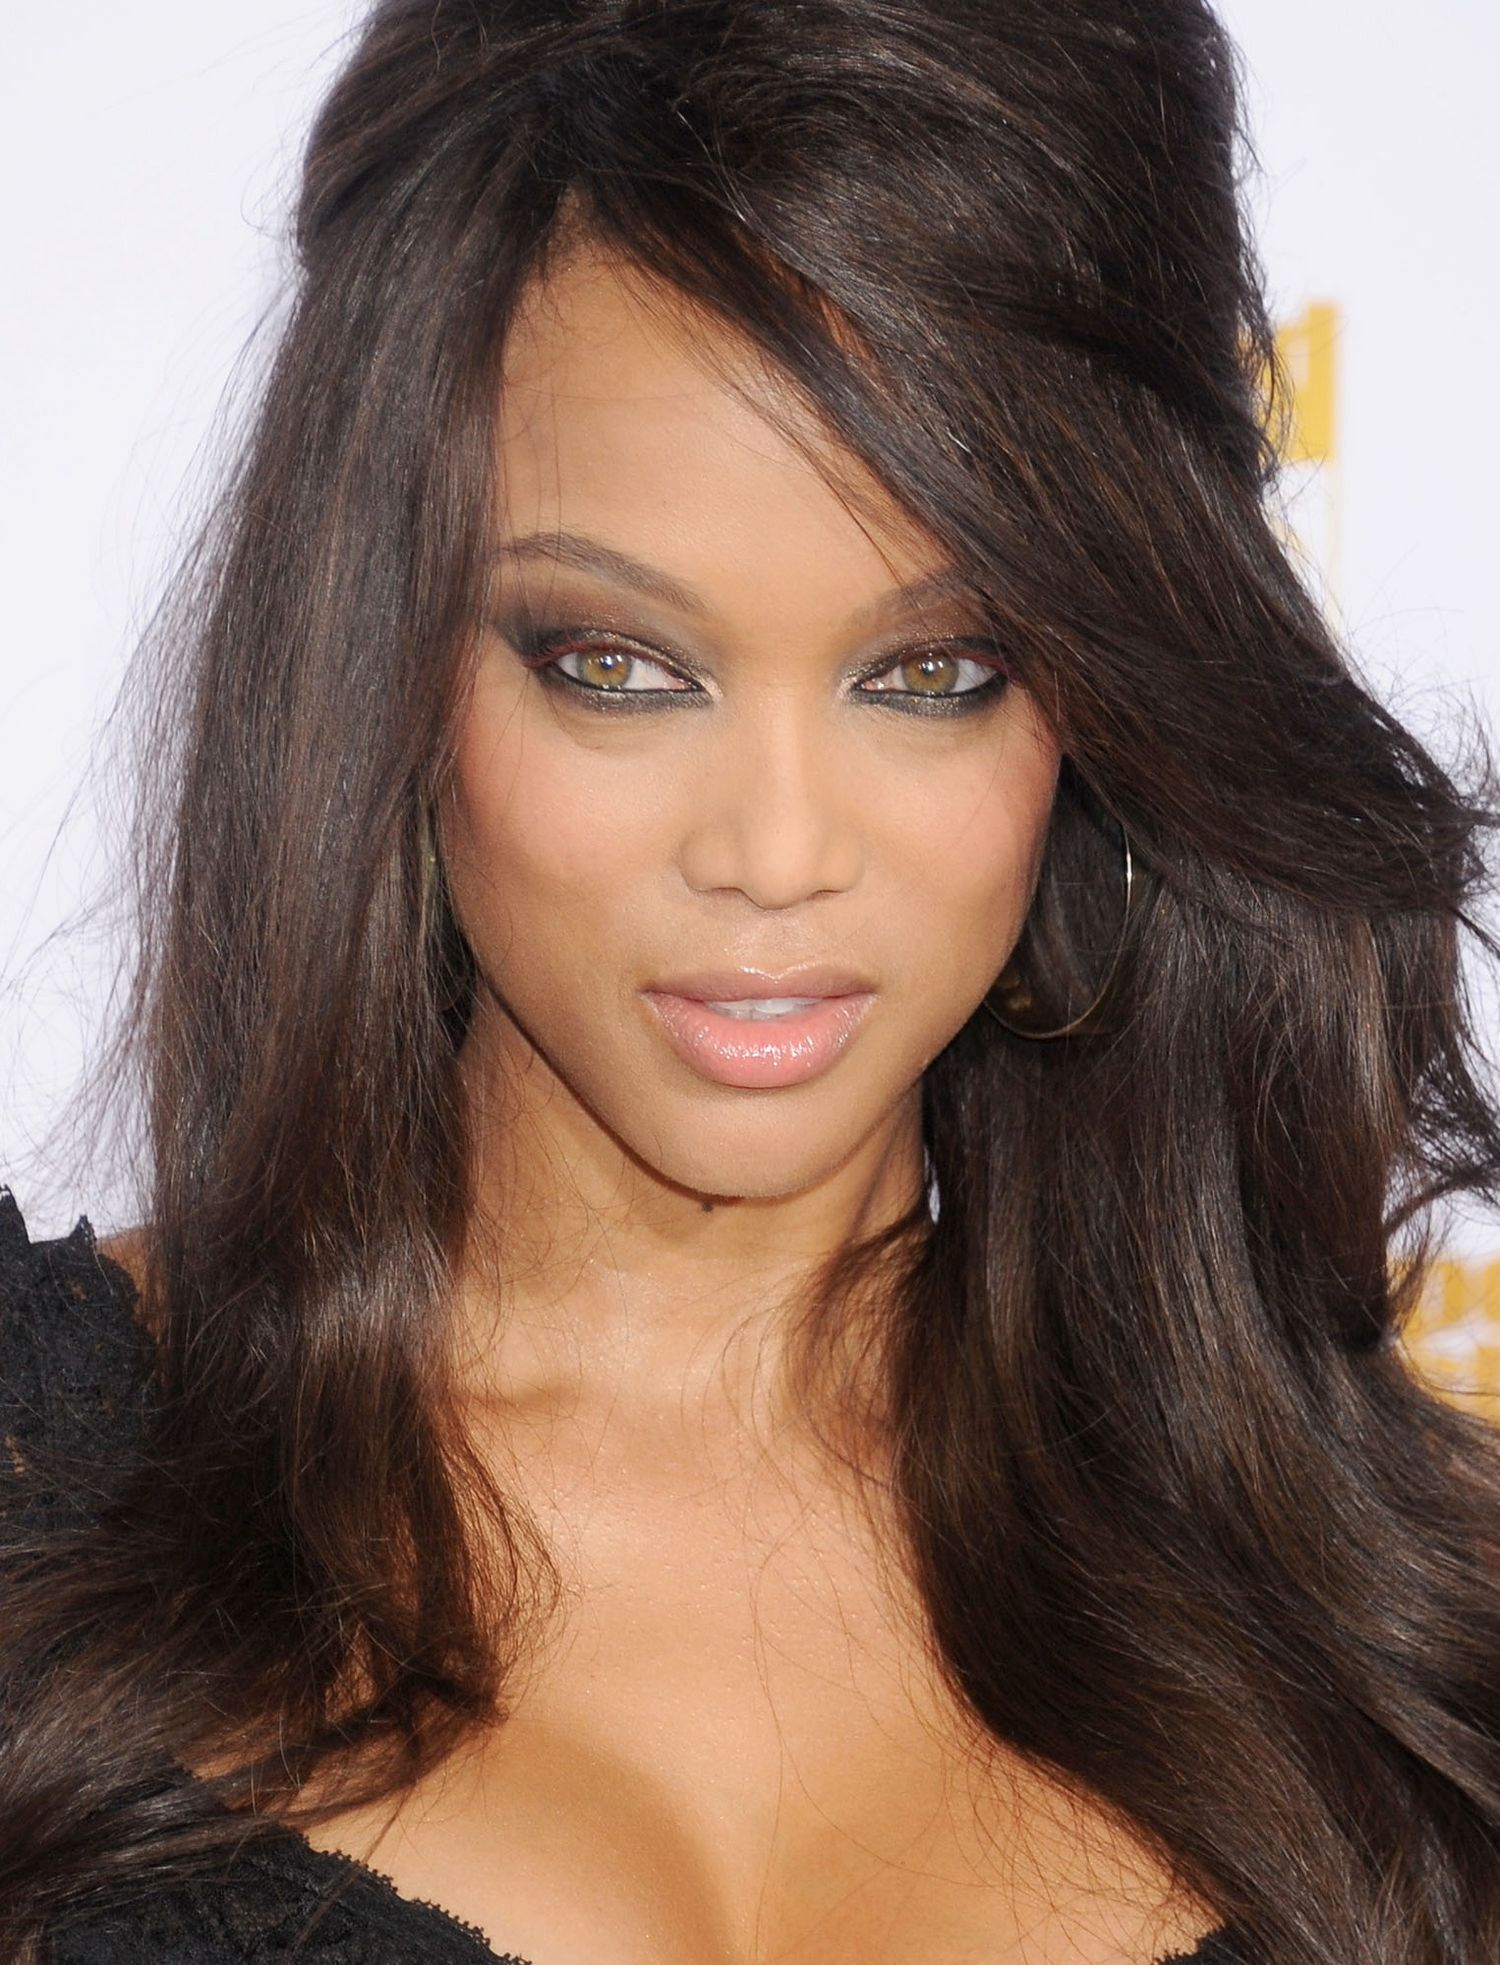 tyra-banks-eye-makeup-main